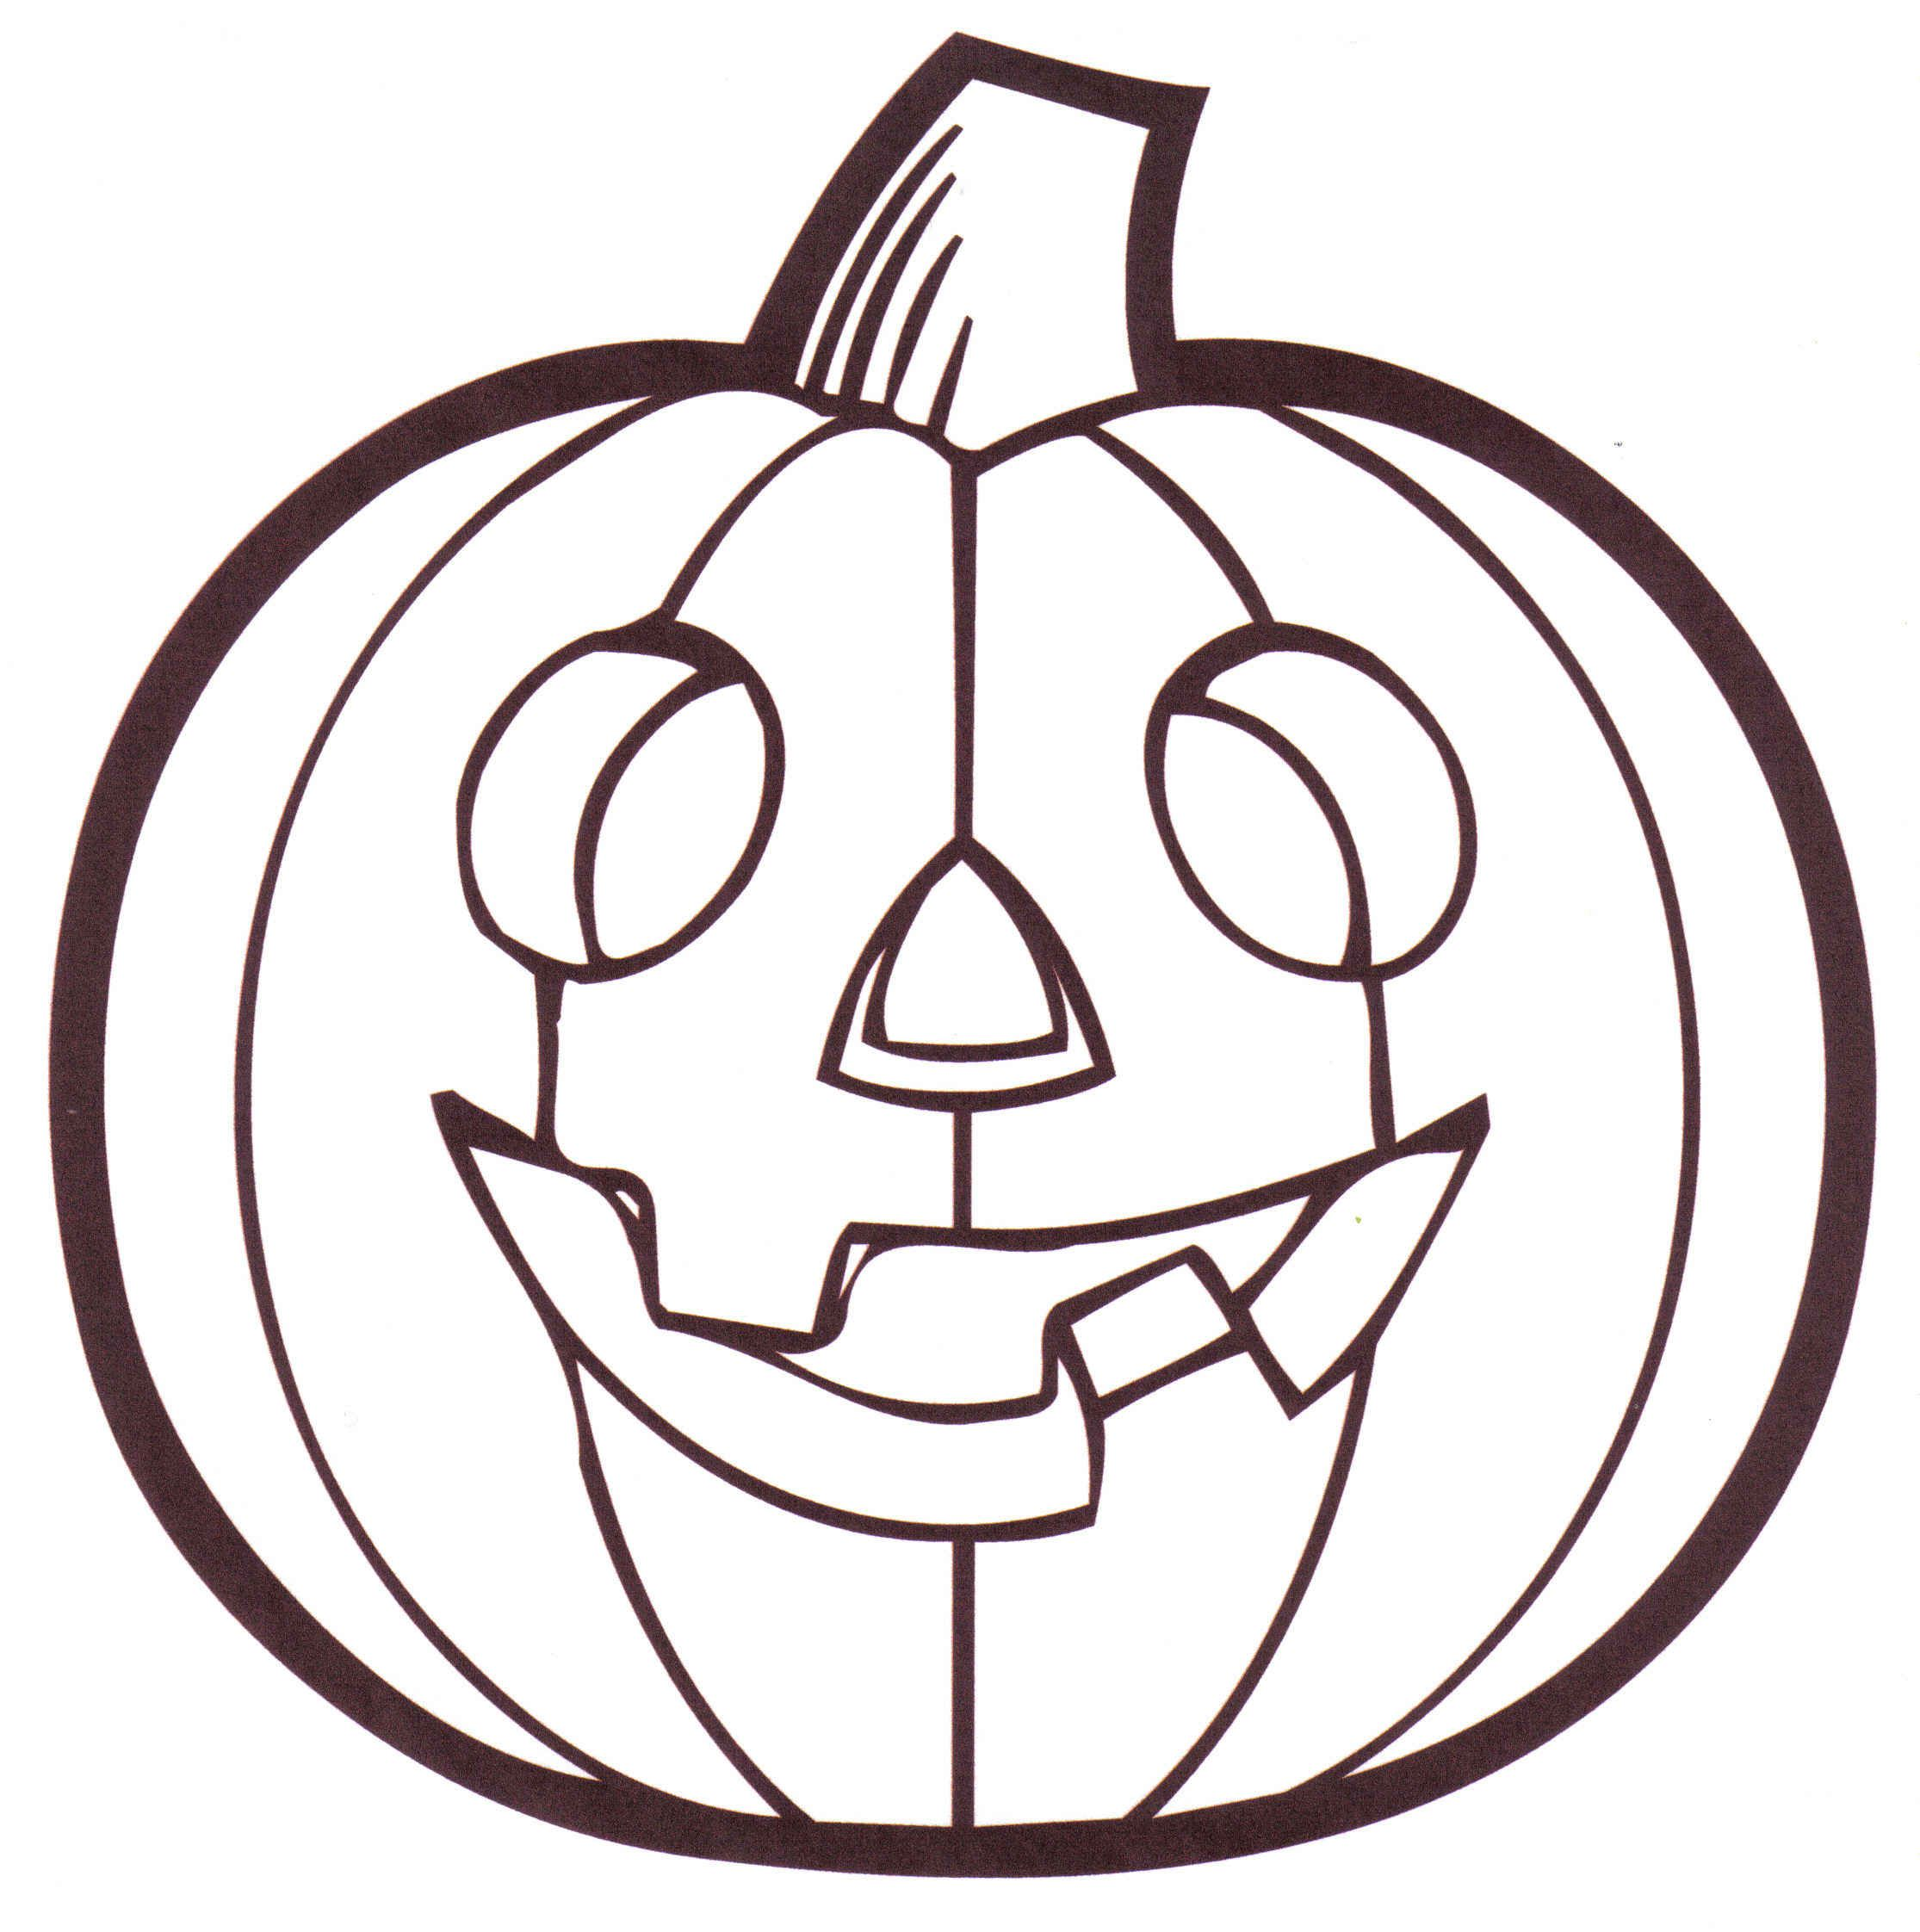 picture regarding Pumpkin Outlines Printable named Pumpkin Define Printable Clipart Panda - No cost Clipart